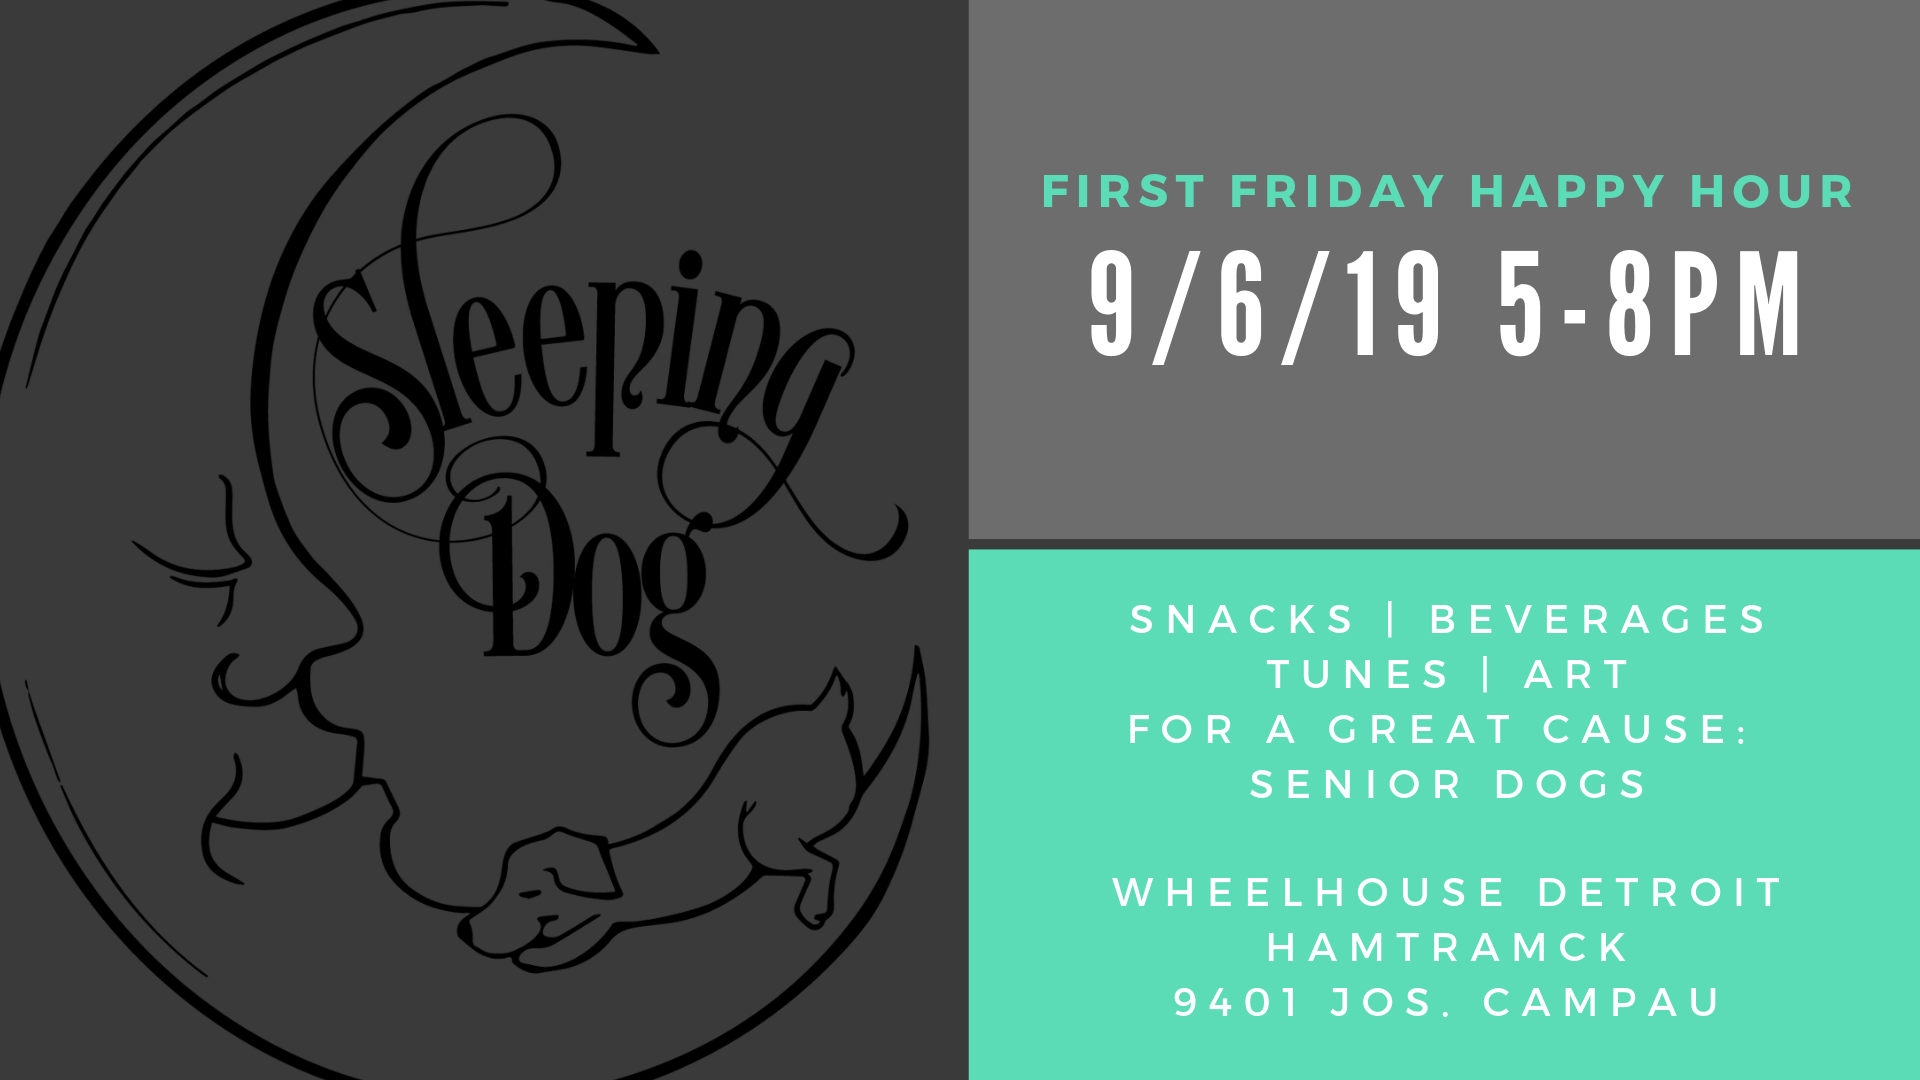 Join us for our September First Friday Happy Hour! In support of Sleeping Dog Studios